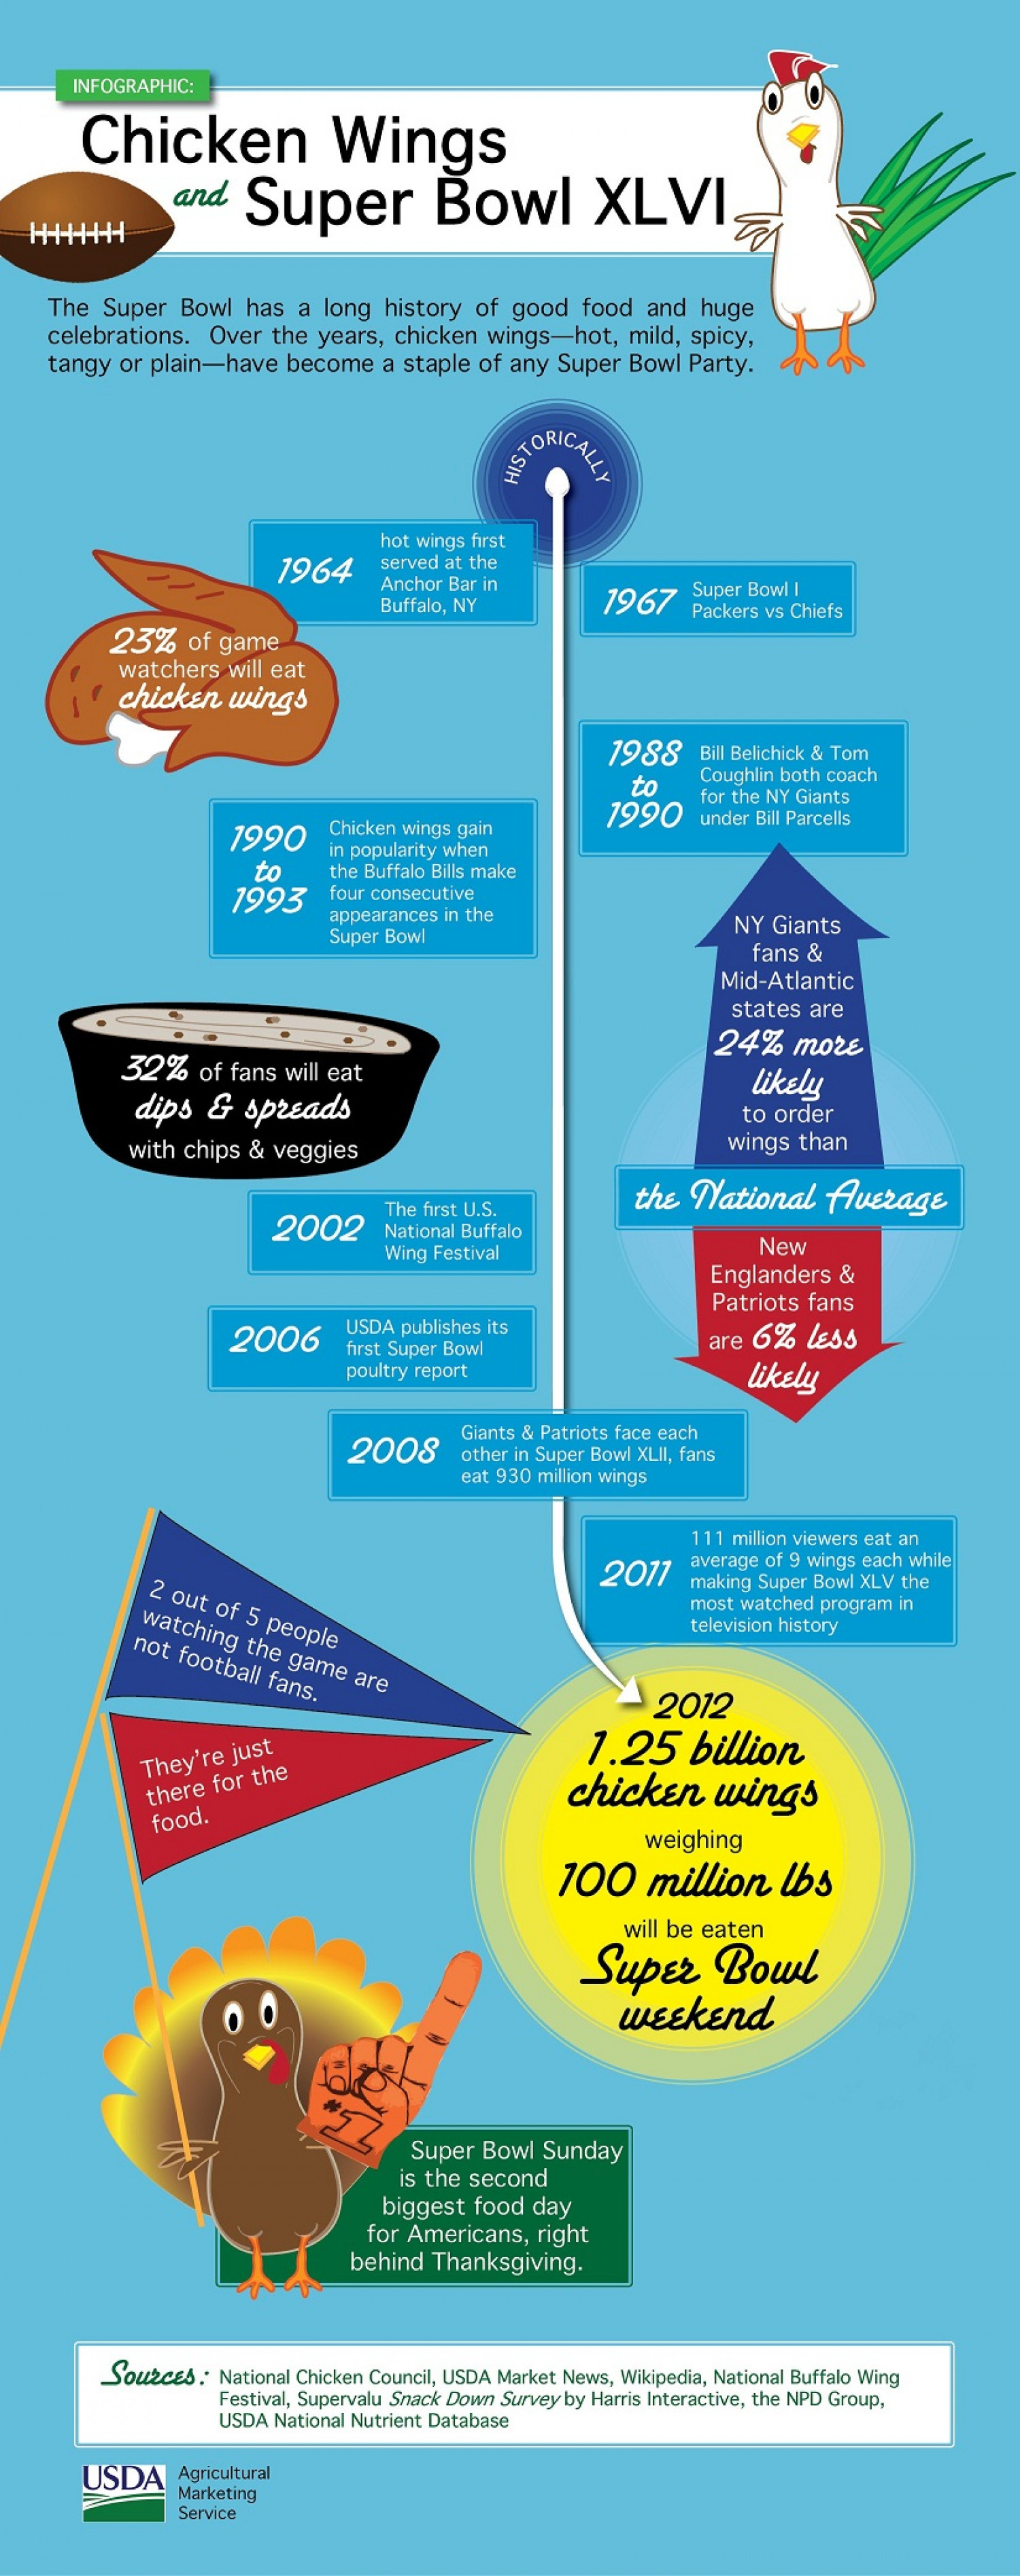 Chicken Wings and Super Bowl XLVI Infographic